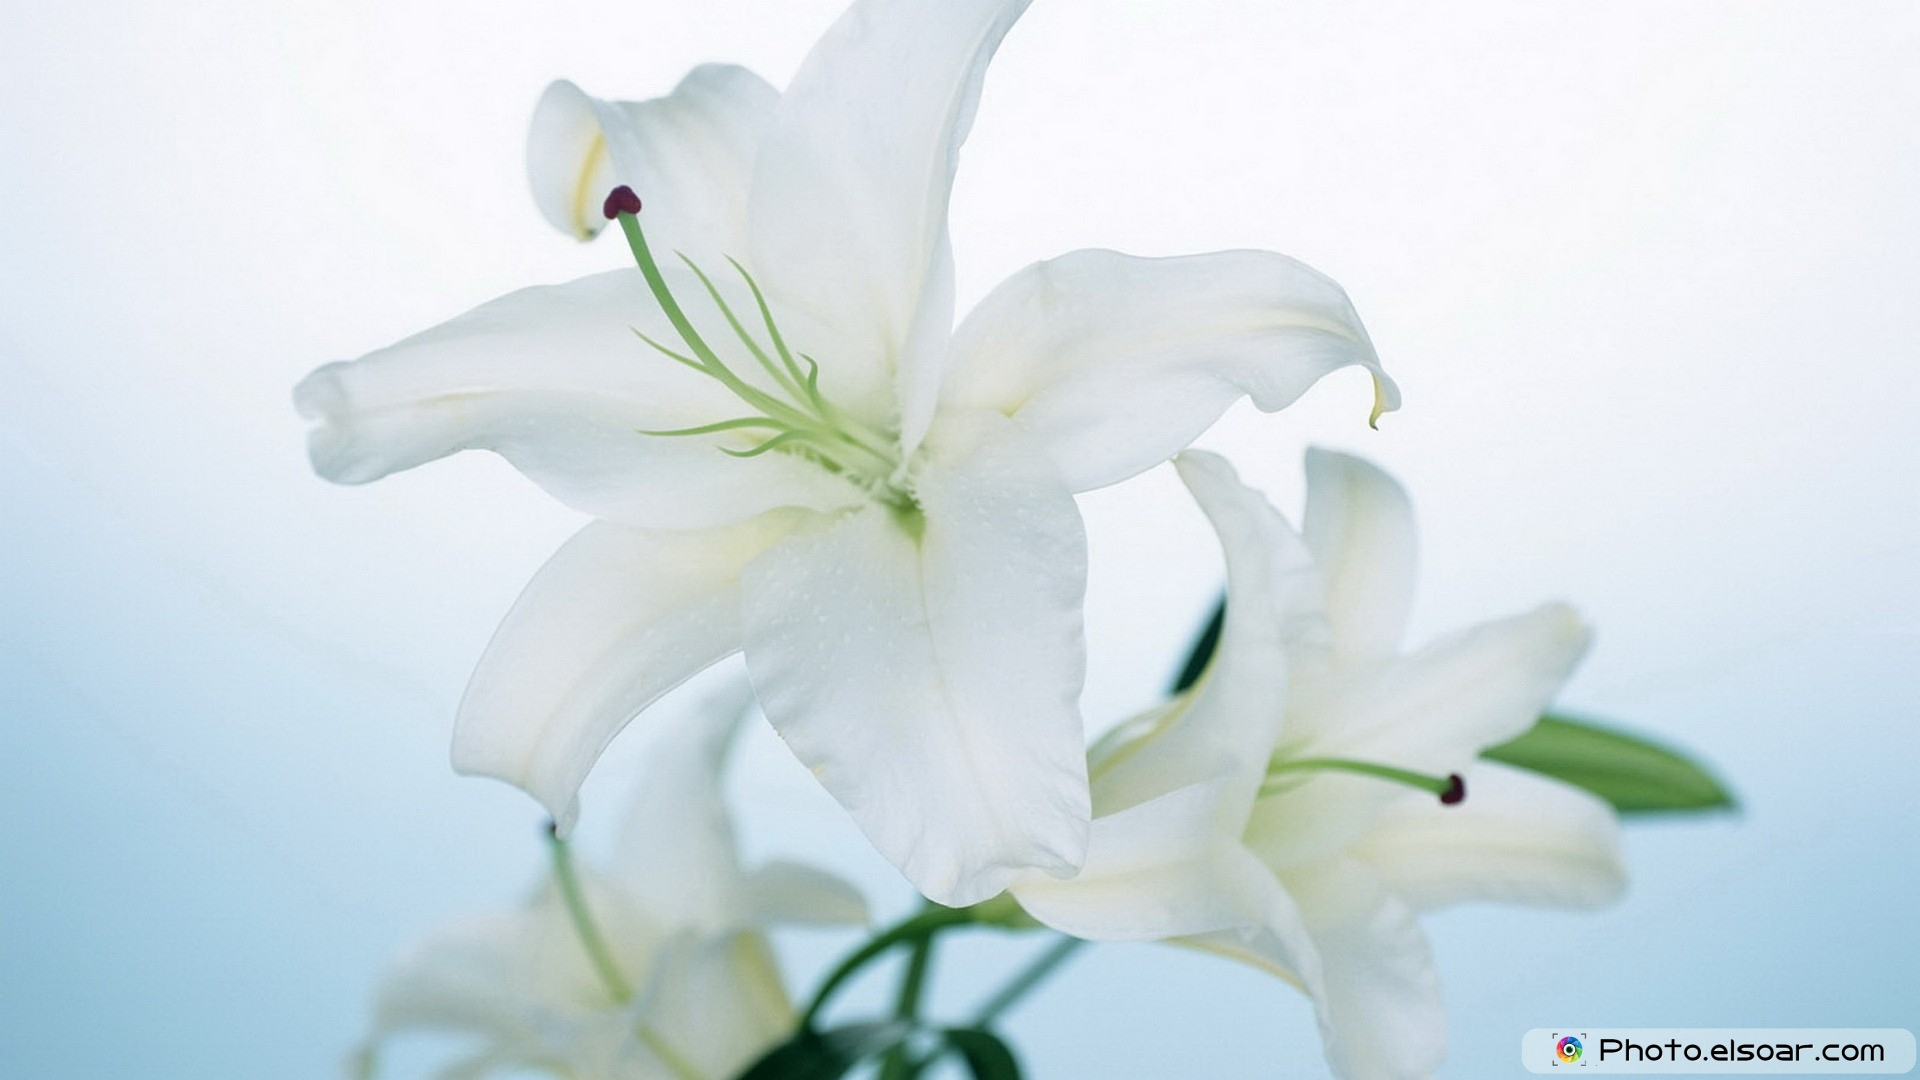 Free photos of white flowers clip freeuse library 10 Most Beautiful White Flowers Free HD Wallpapers • Elsoar clip freeuse library